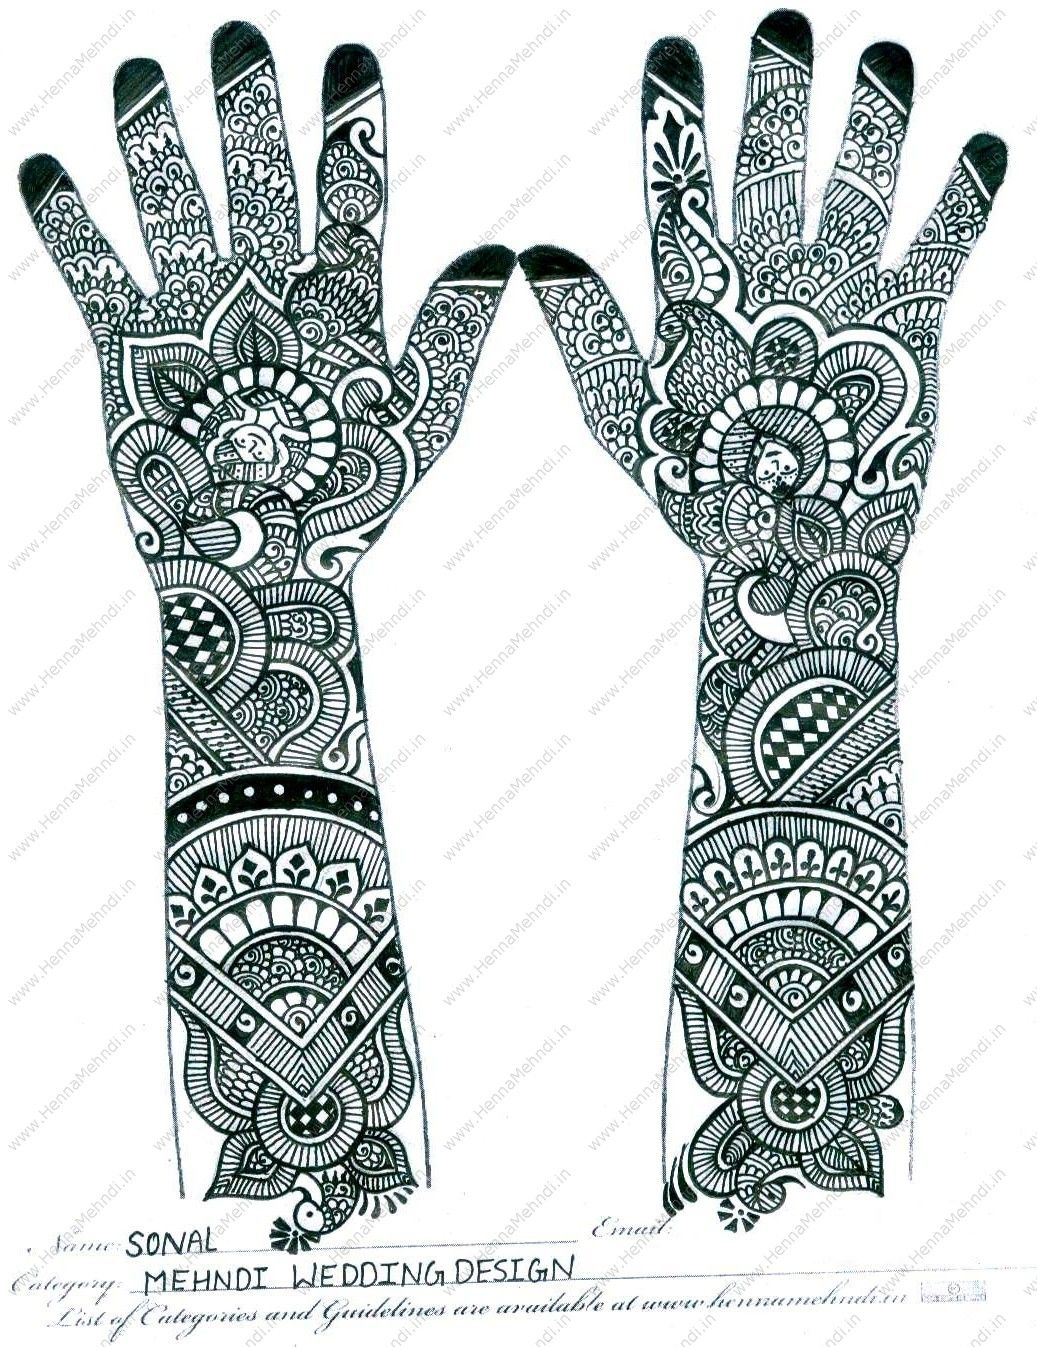 Henna Stencils: Fashion,Styles And Trends